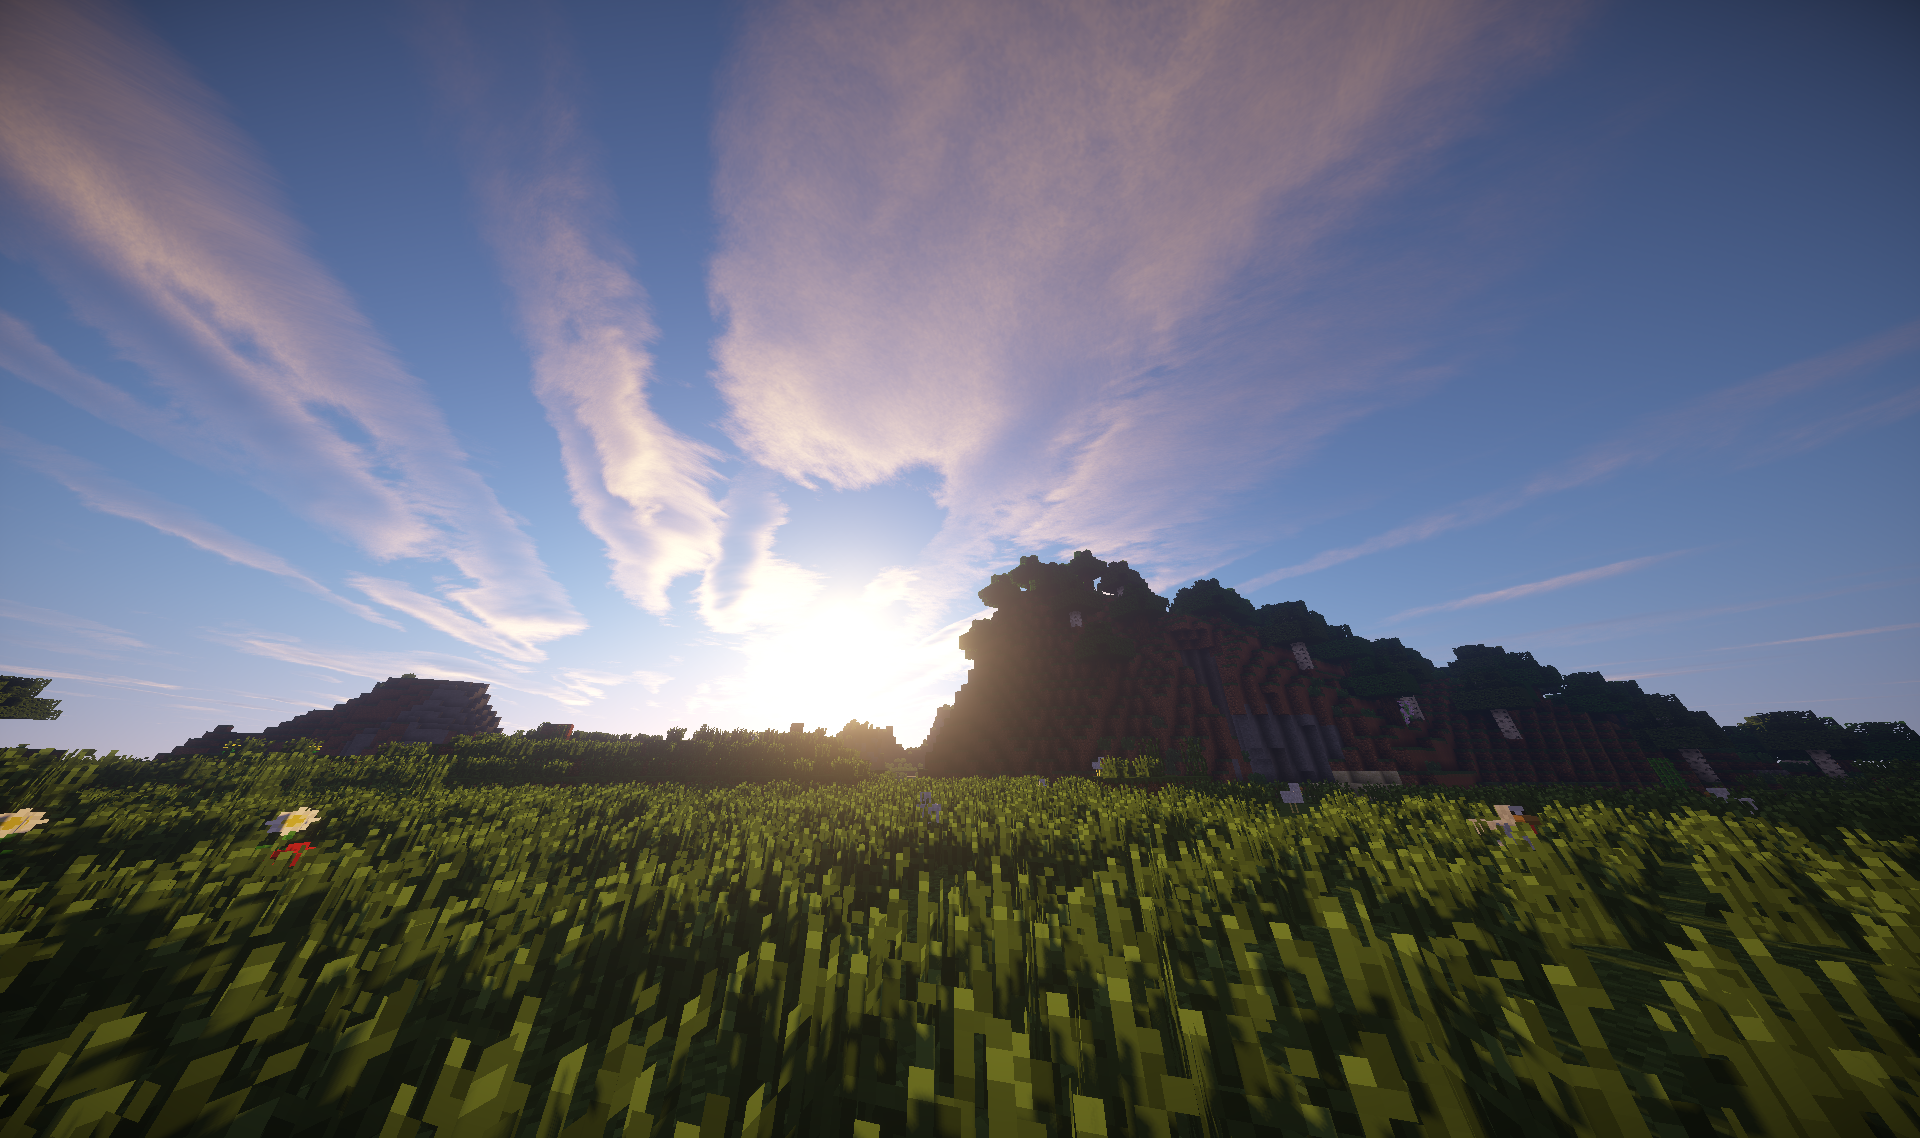 Shader WallPapers - Discussion - Minecraft: Java Edition ...